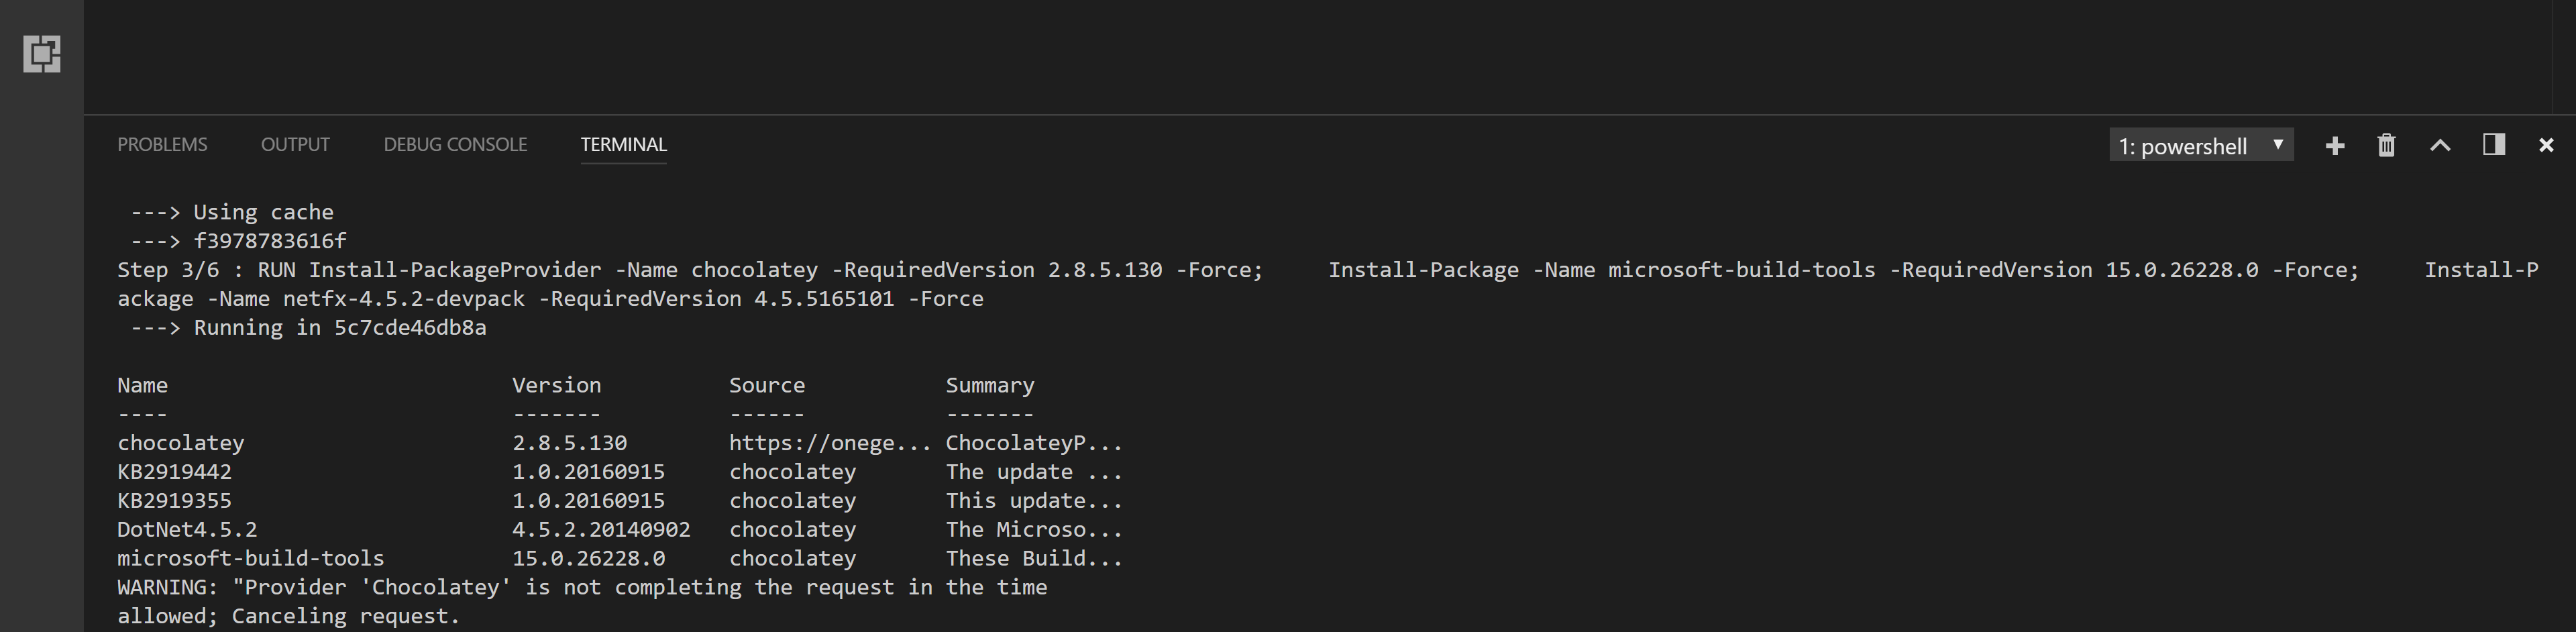 Build of build container for SQL Server lab taking an age